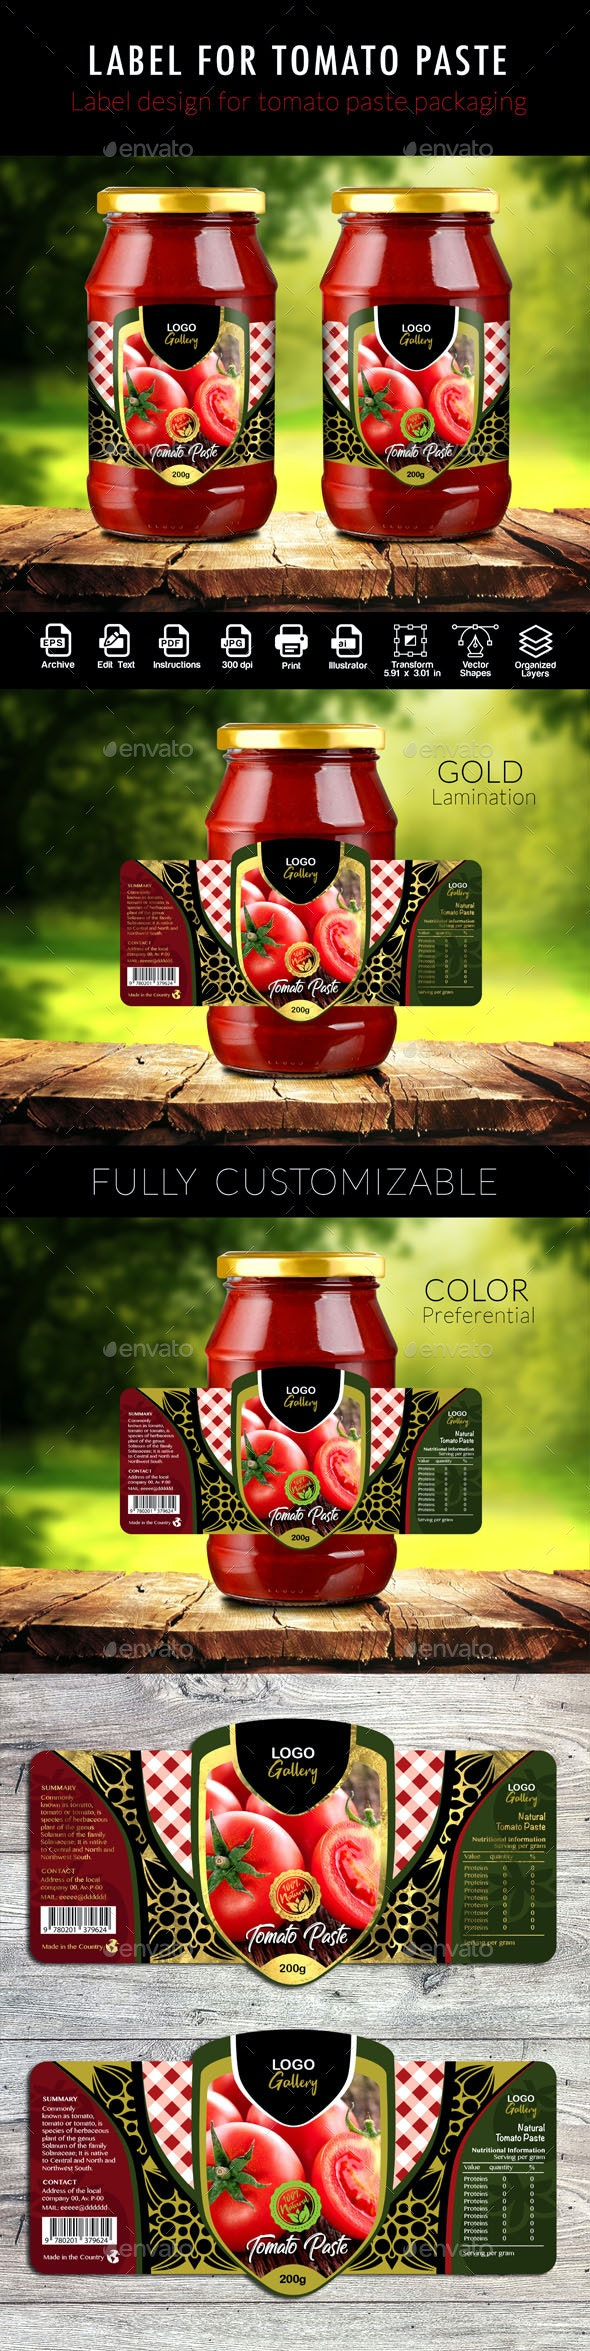 Template Design for Tomato Pulp Packaging - Packaging Print Templates